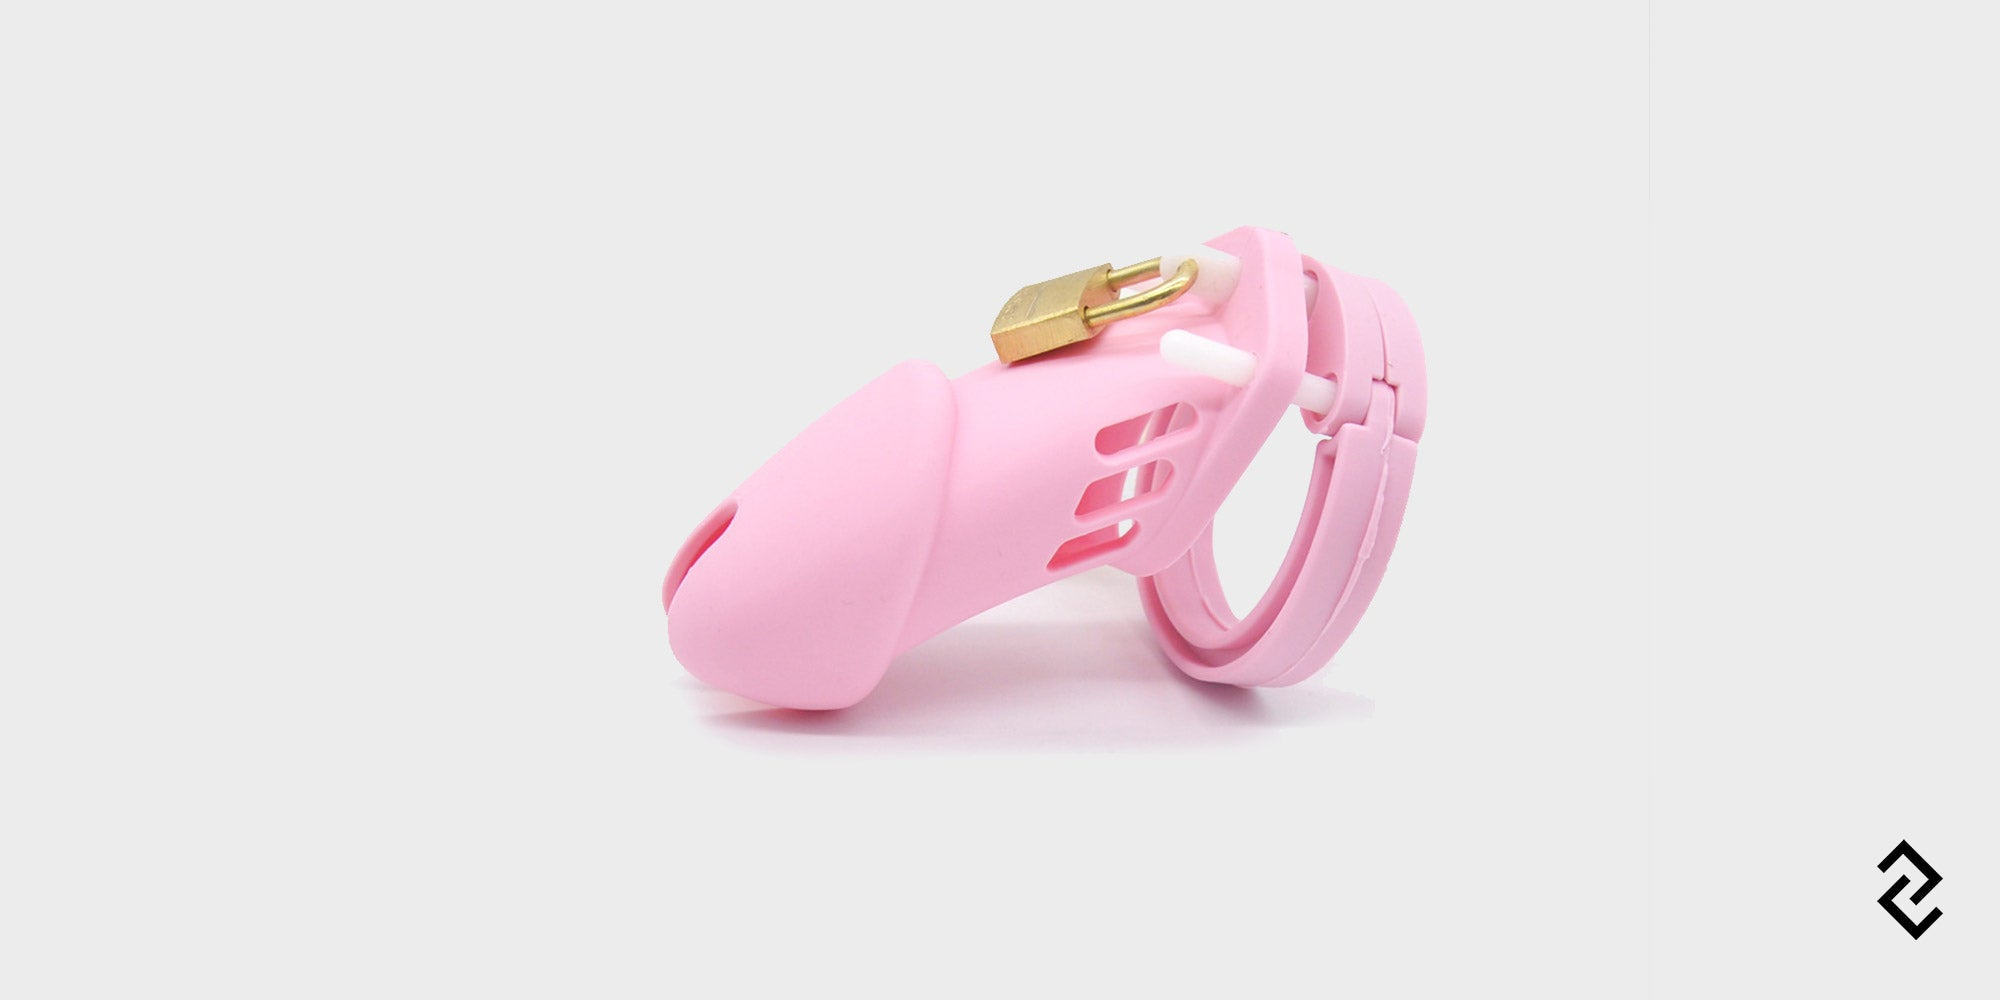 cb6000 is a pink chastity cage made of soft silicone